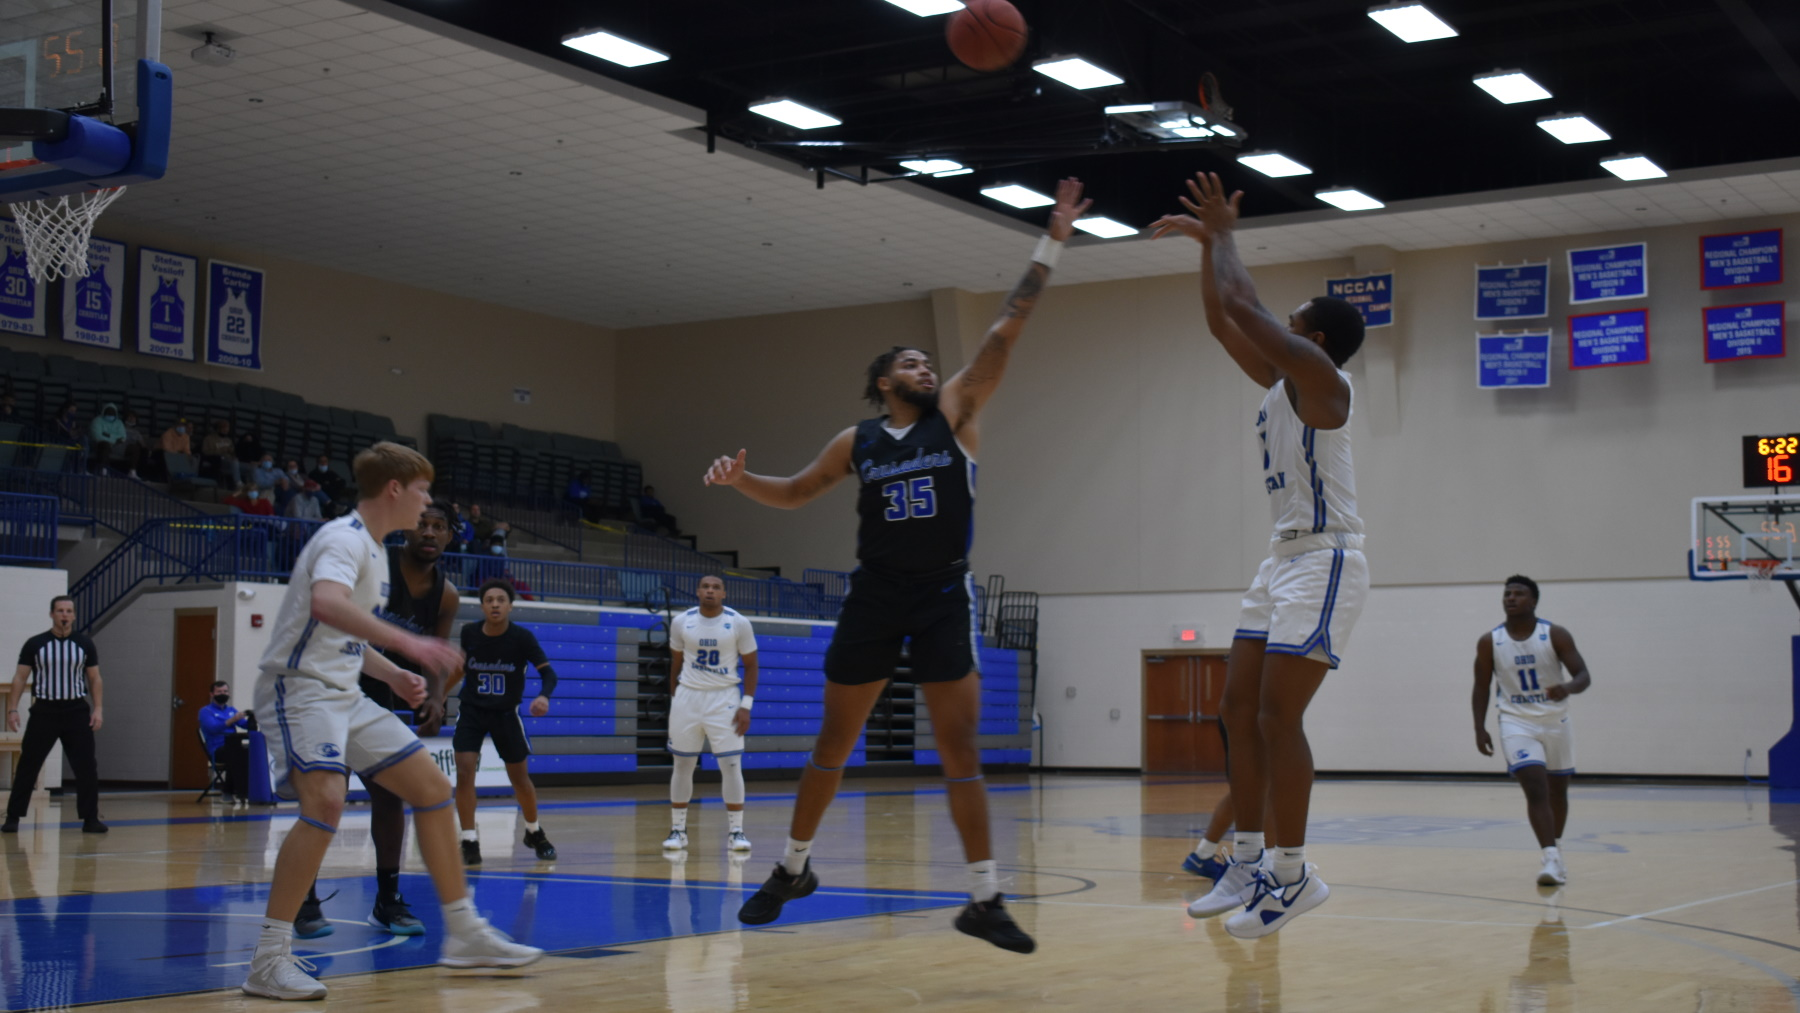 Crusaders Come From Behind To Defeat Trailblazers